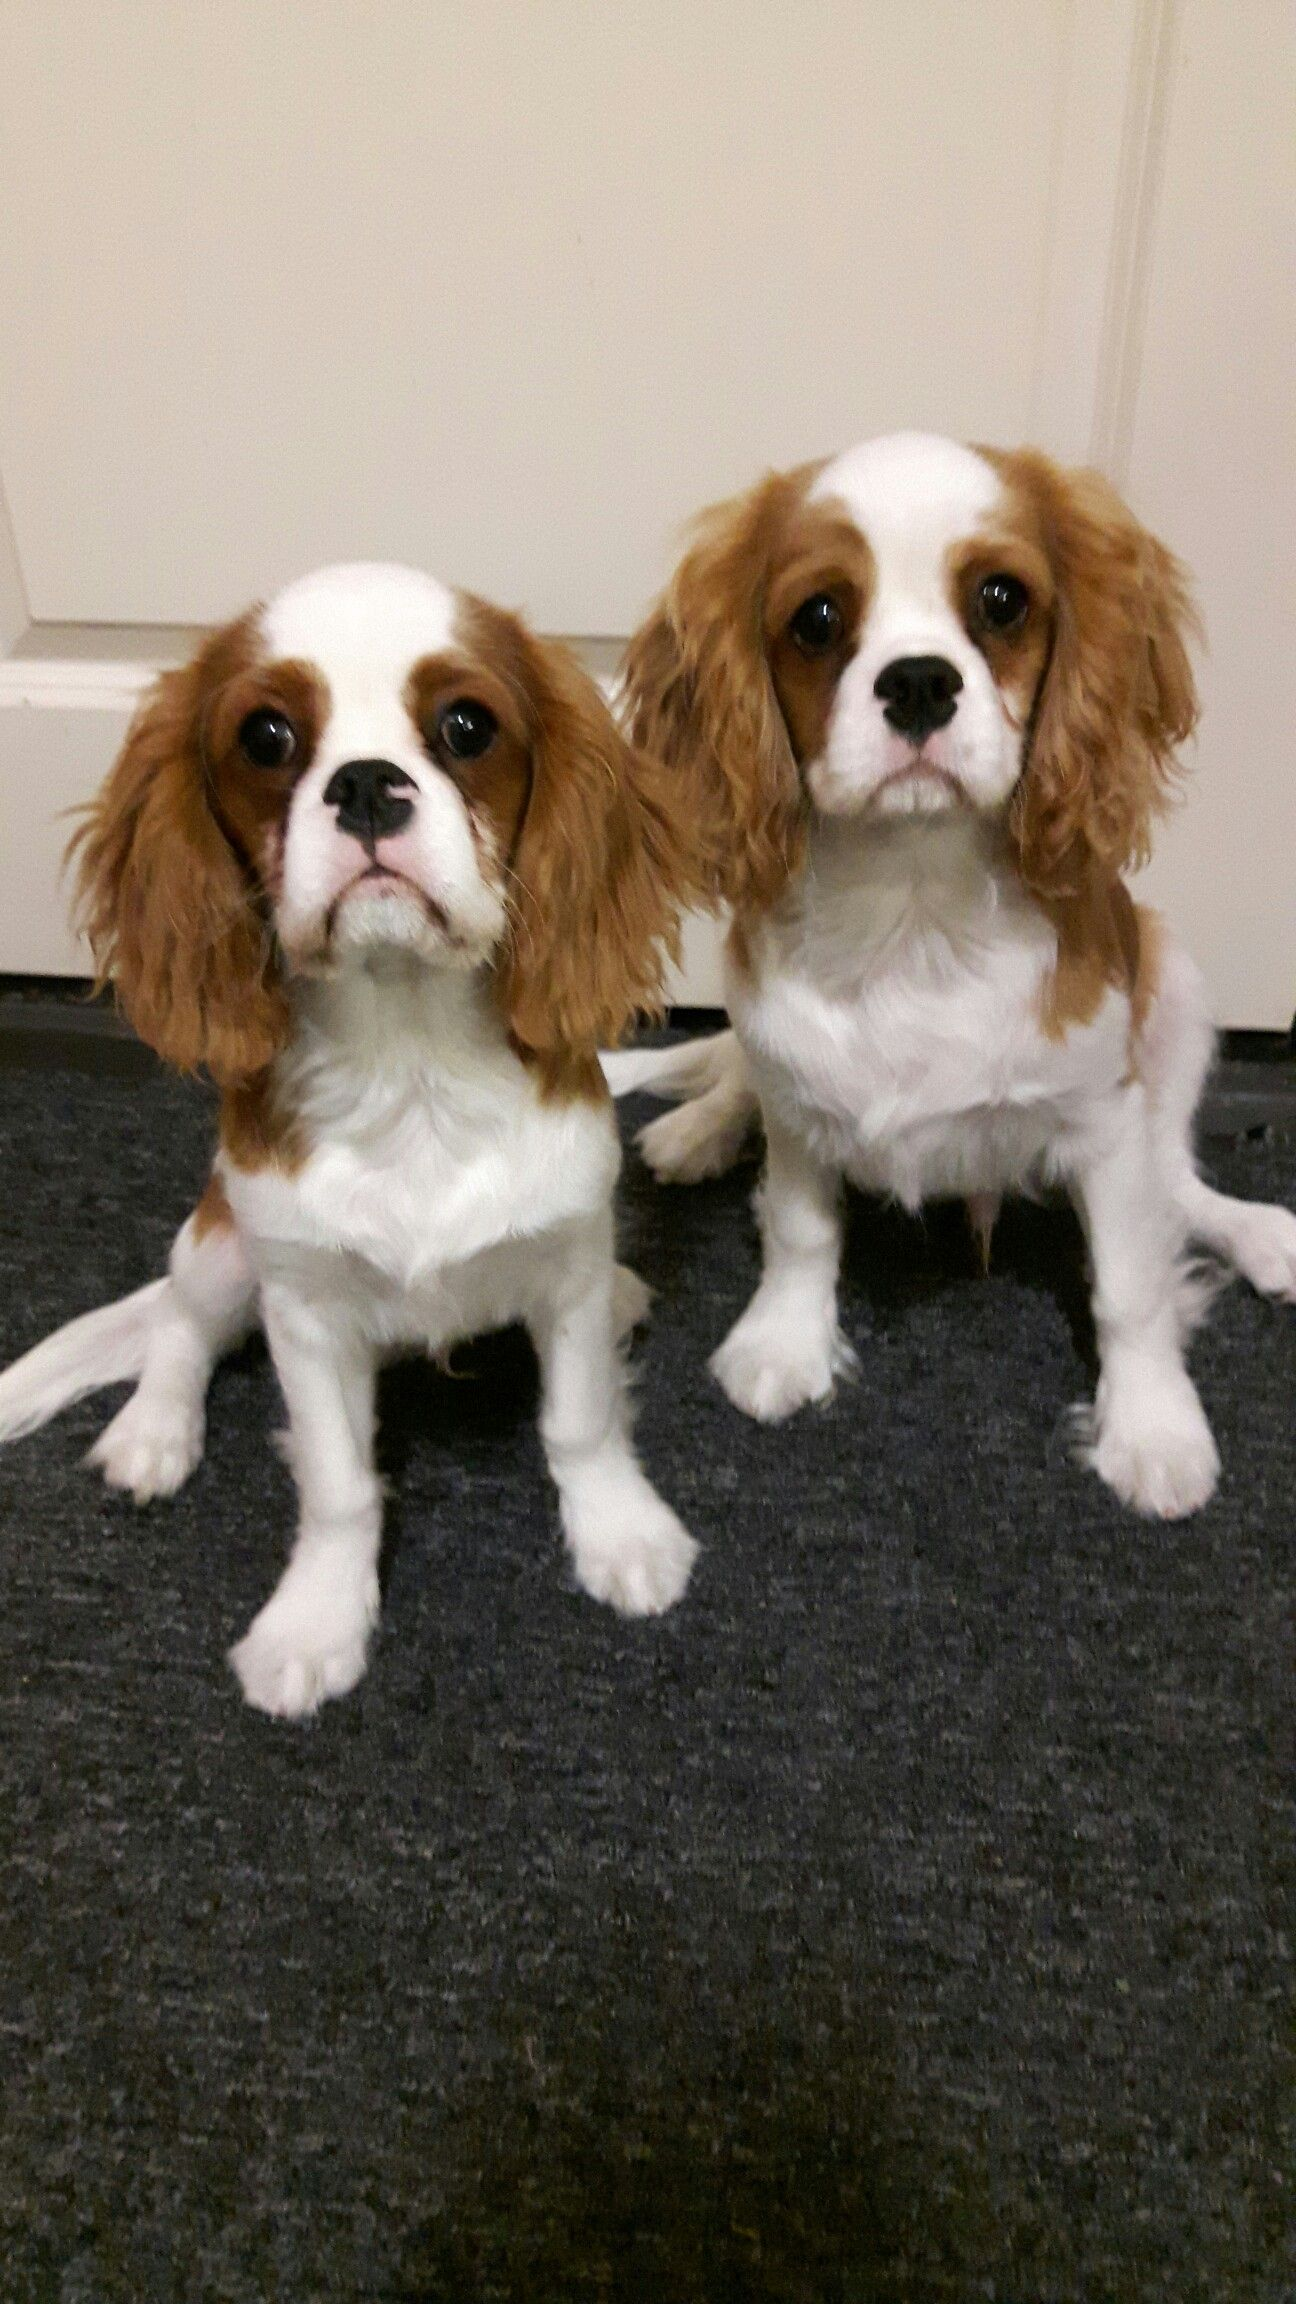 Diamond Dancer Waiting For Food Gloriousfood King Charles Cavalier Spaniel Puppy King Charles Puppy Cavalier King Charles Spaniel